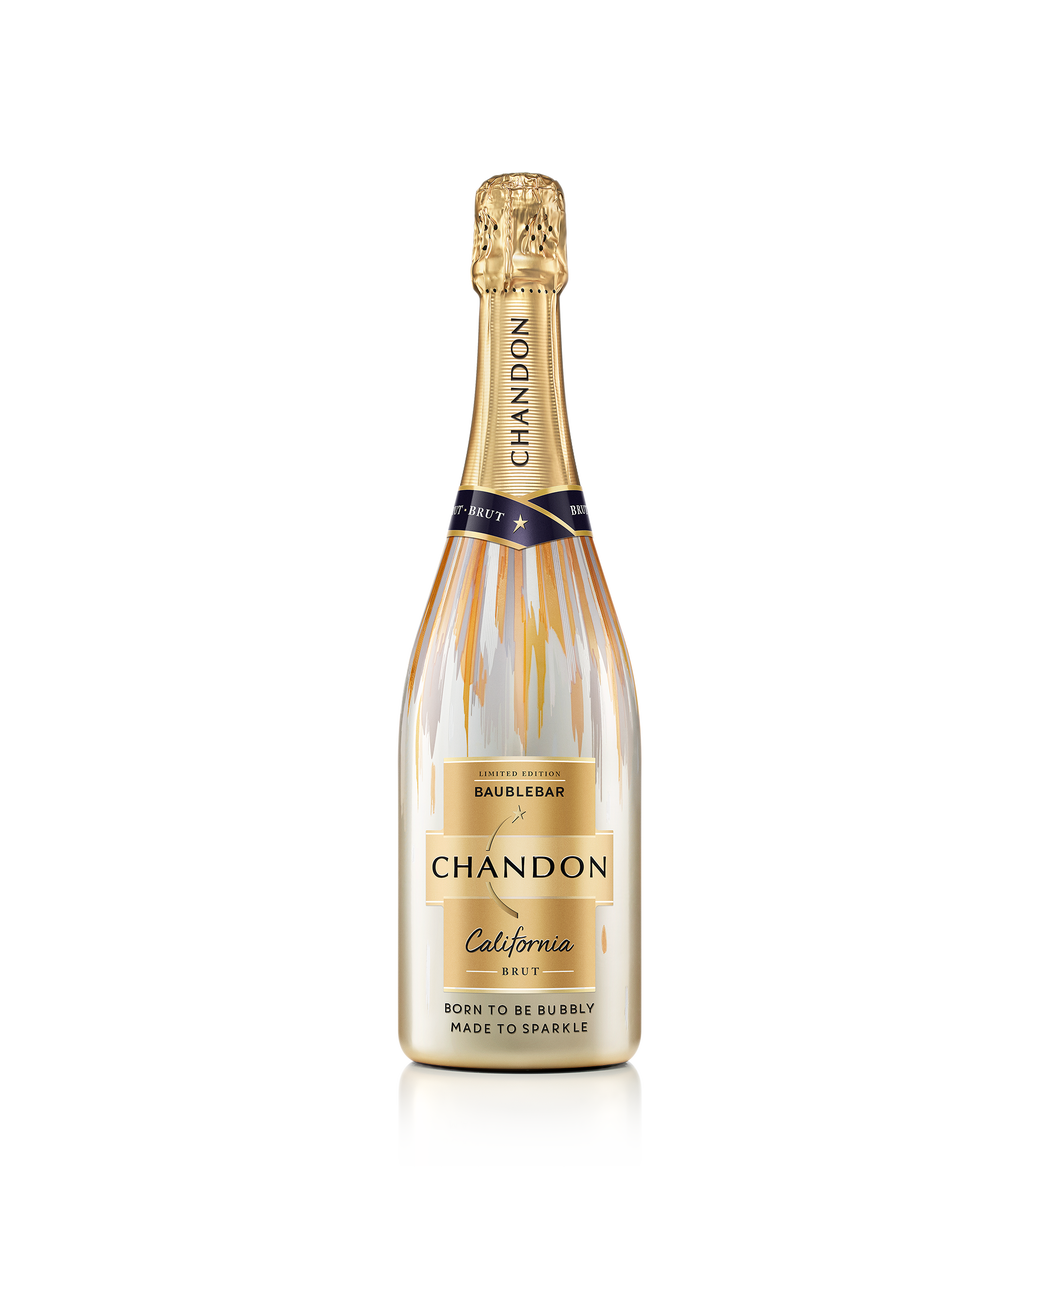 Chandon x Bauble Bar Champagne